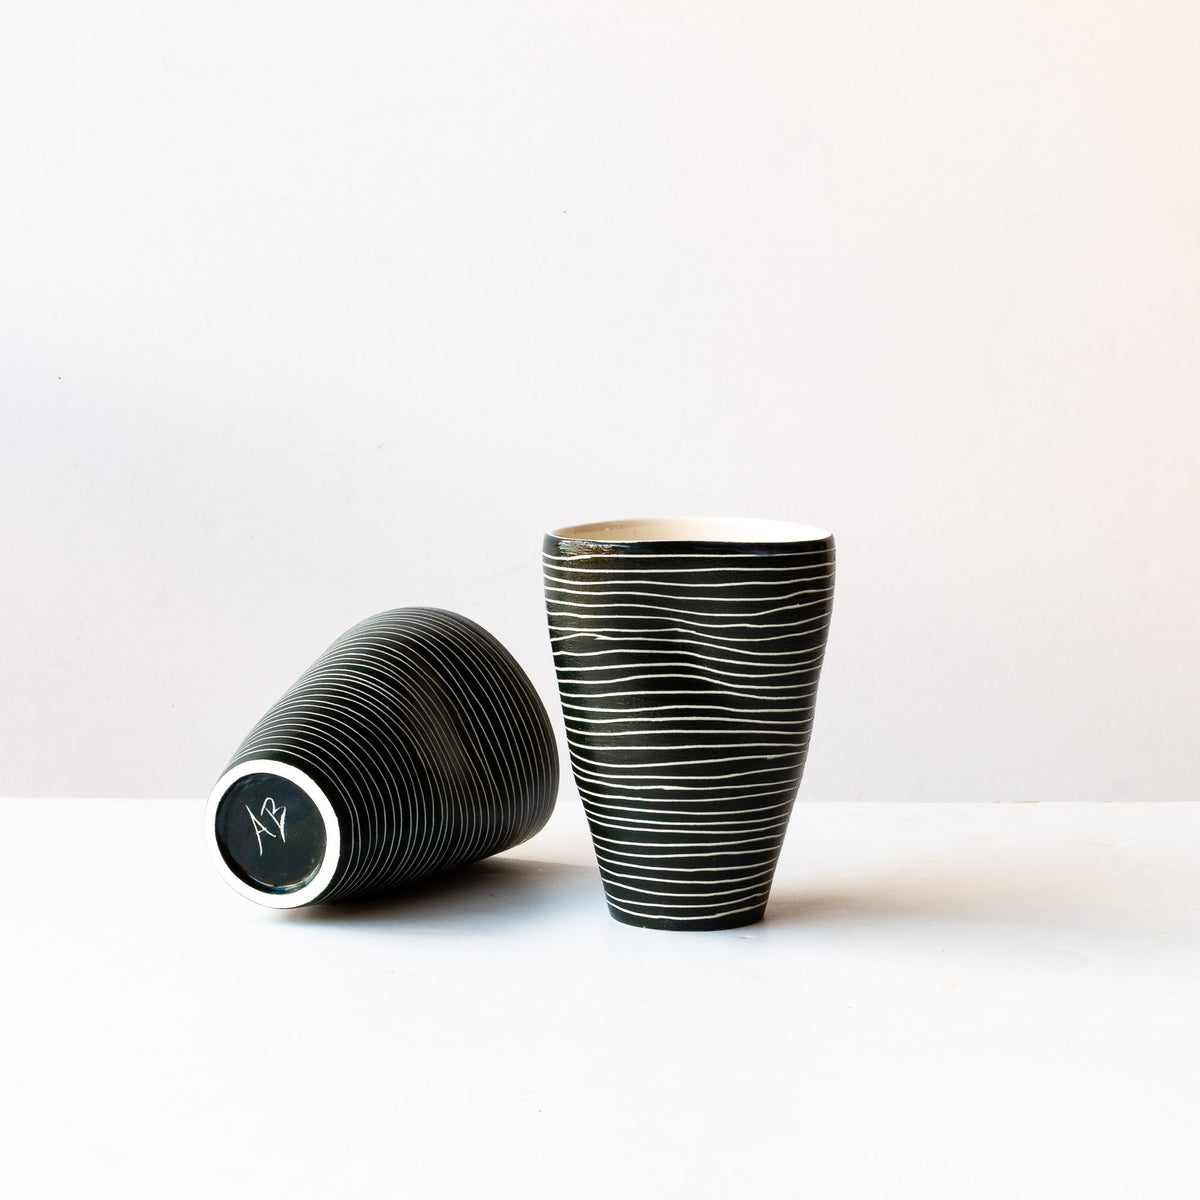 Two Large Black & Wwite Porcelain Tumblers - Sold by Chic & Basta